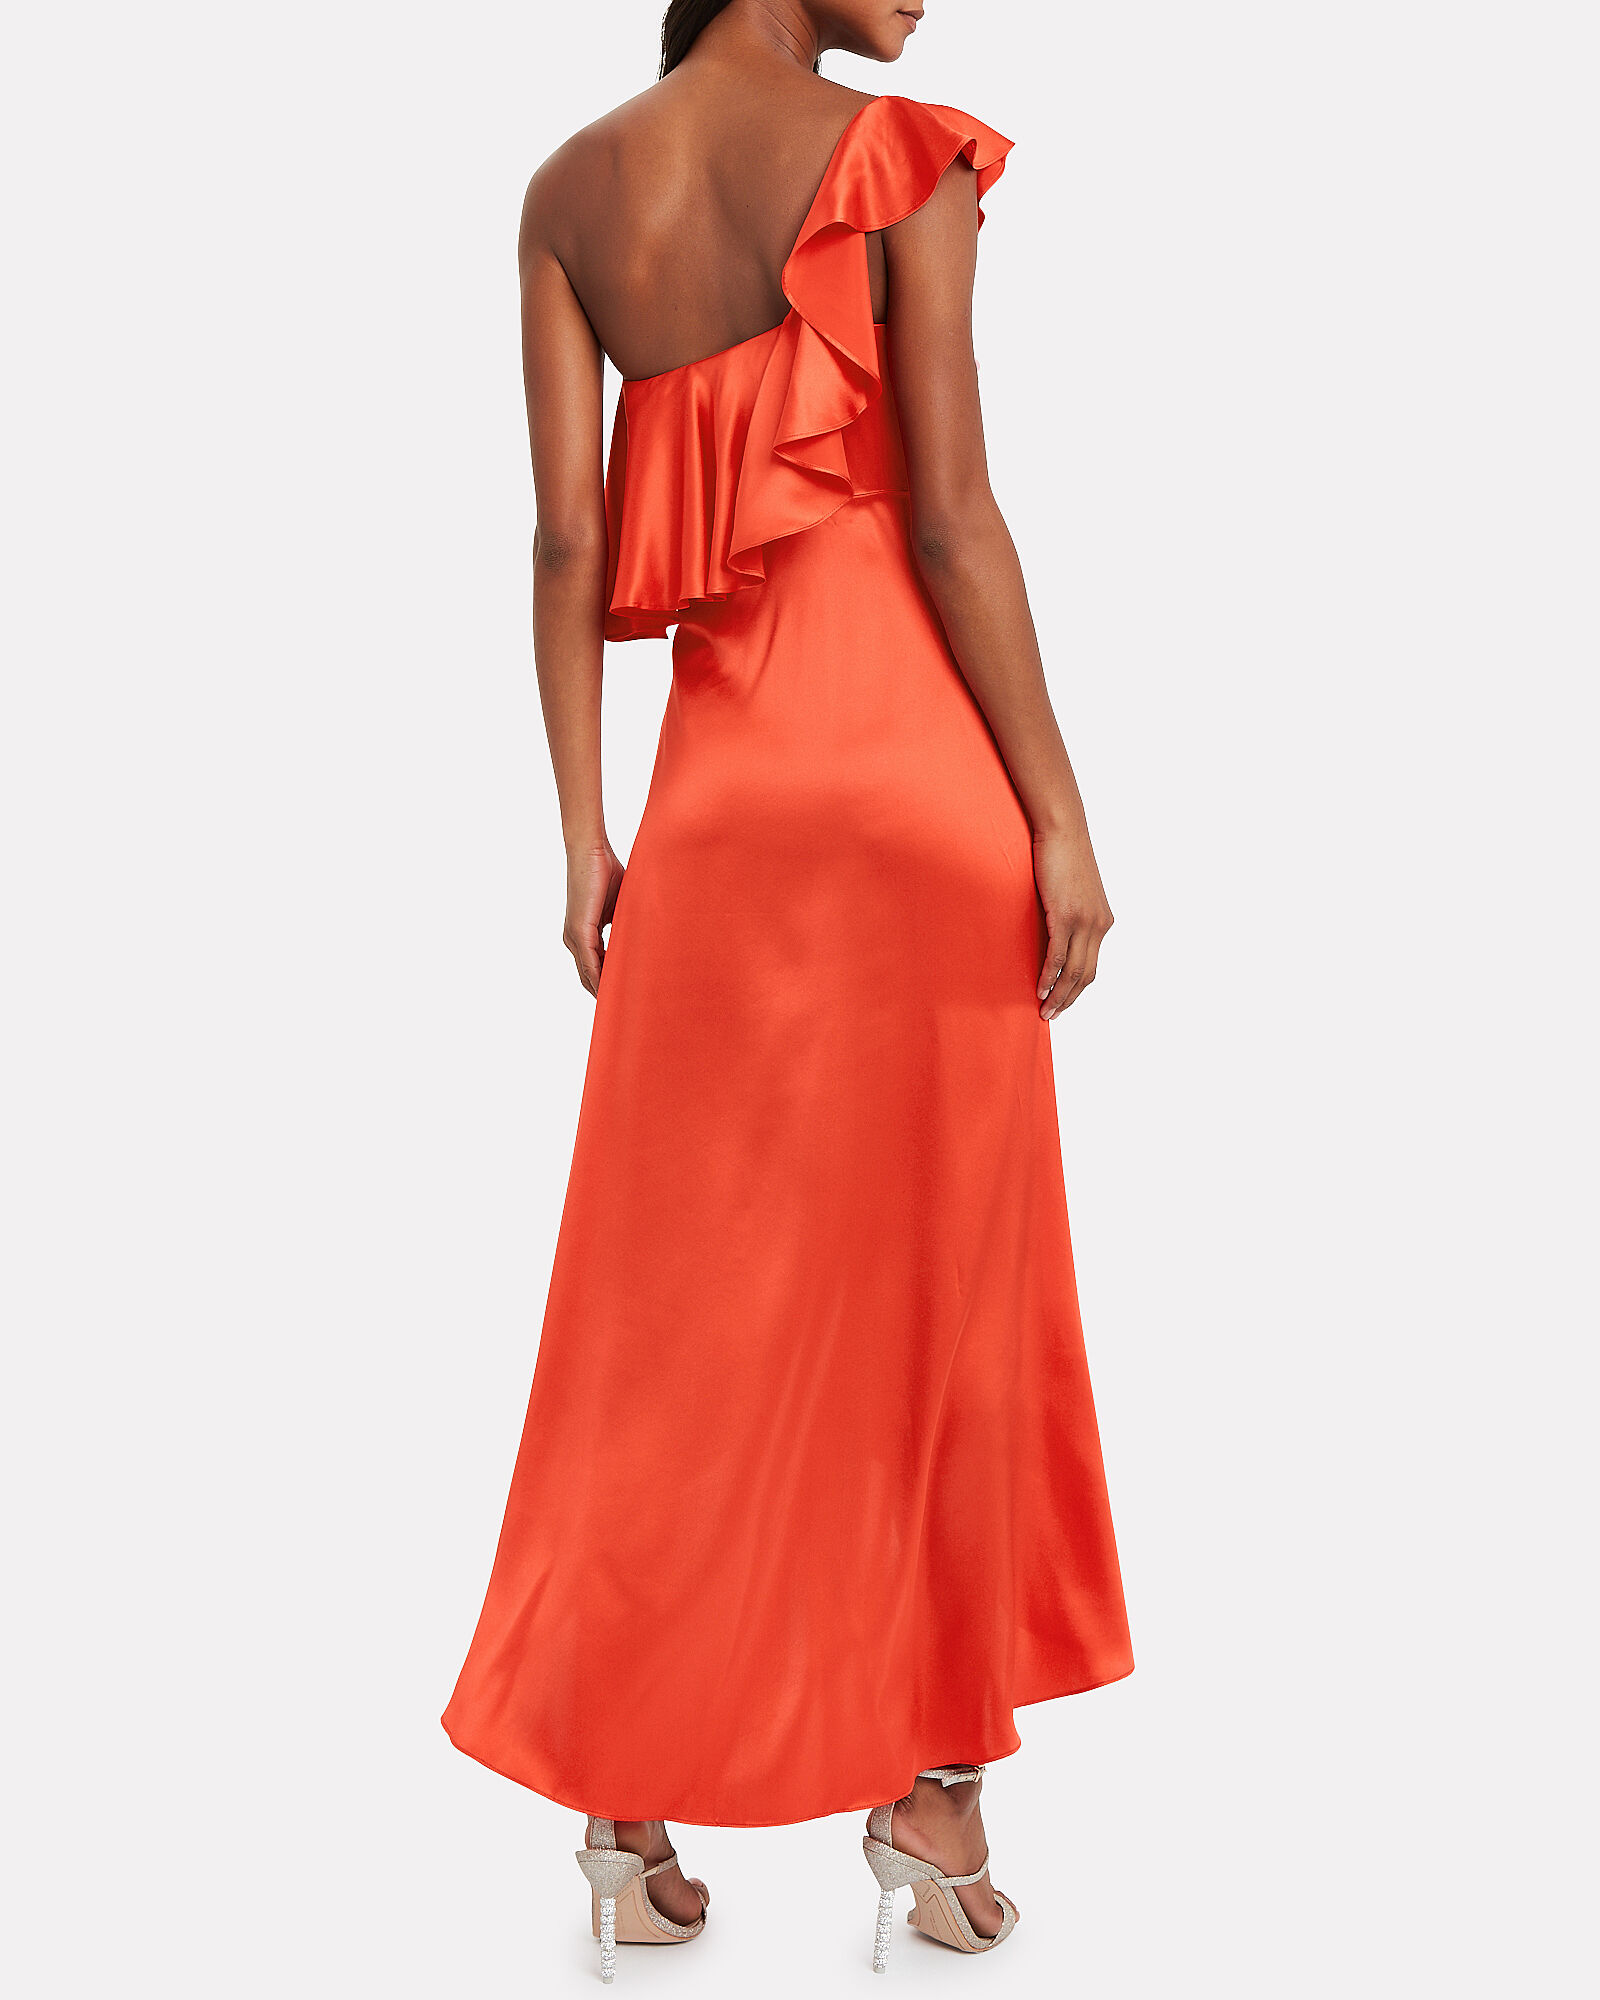 Austyn Silk One Shoulder Dress, RED, hi-res